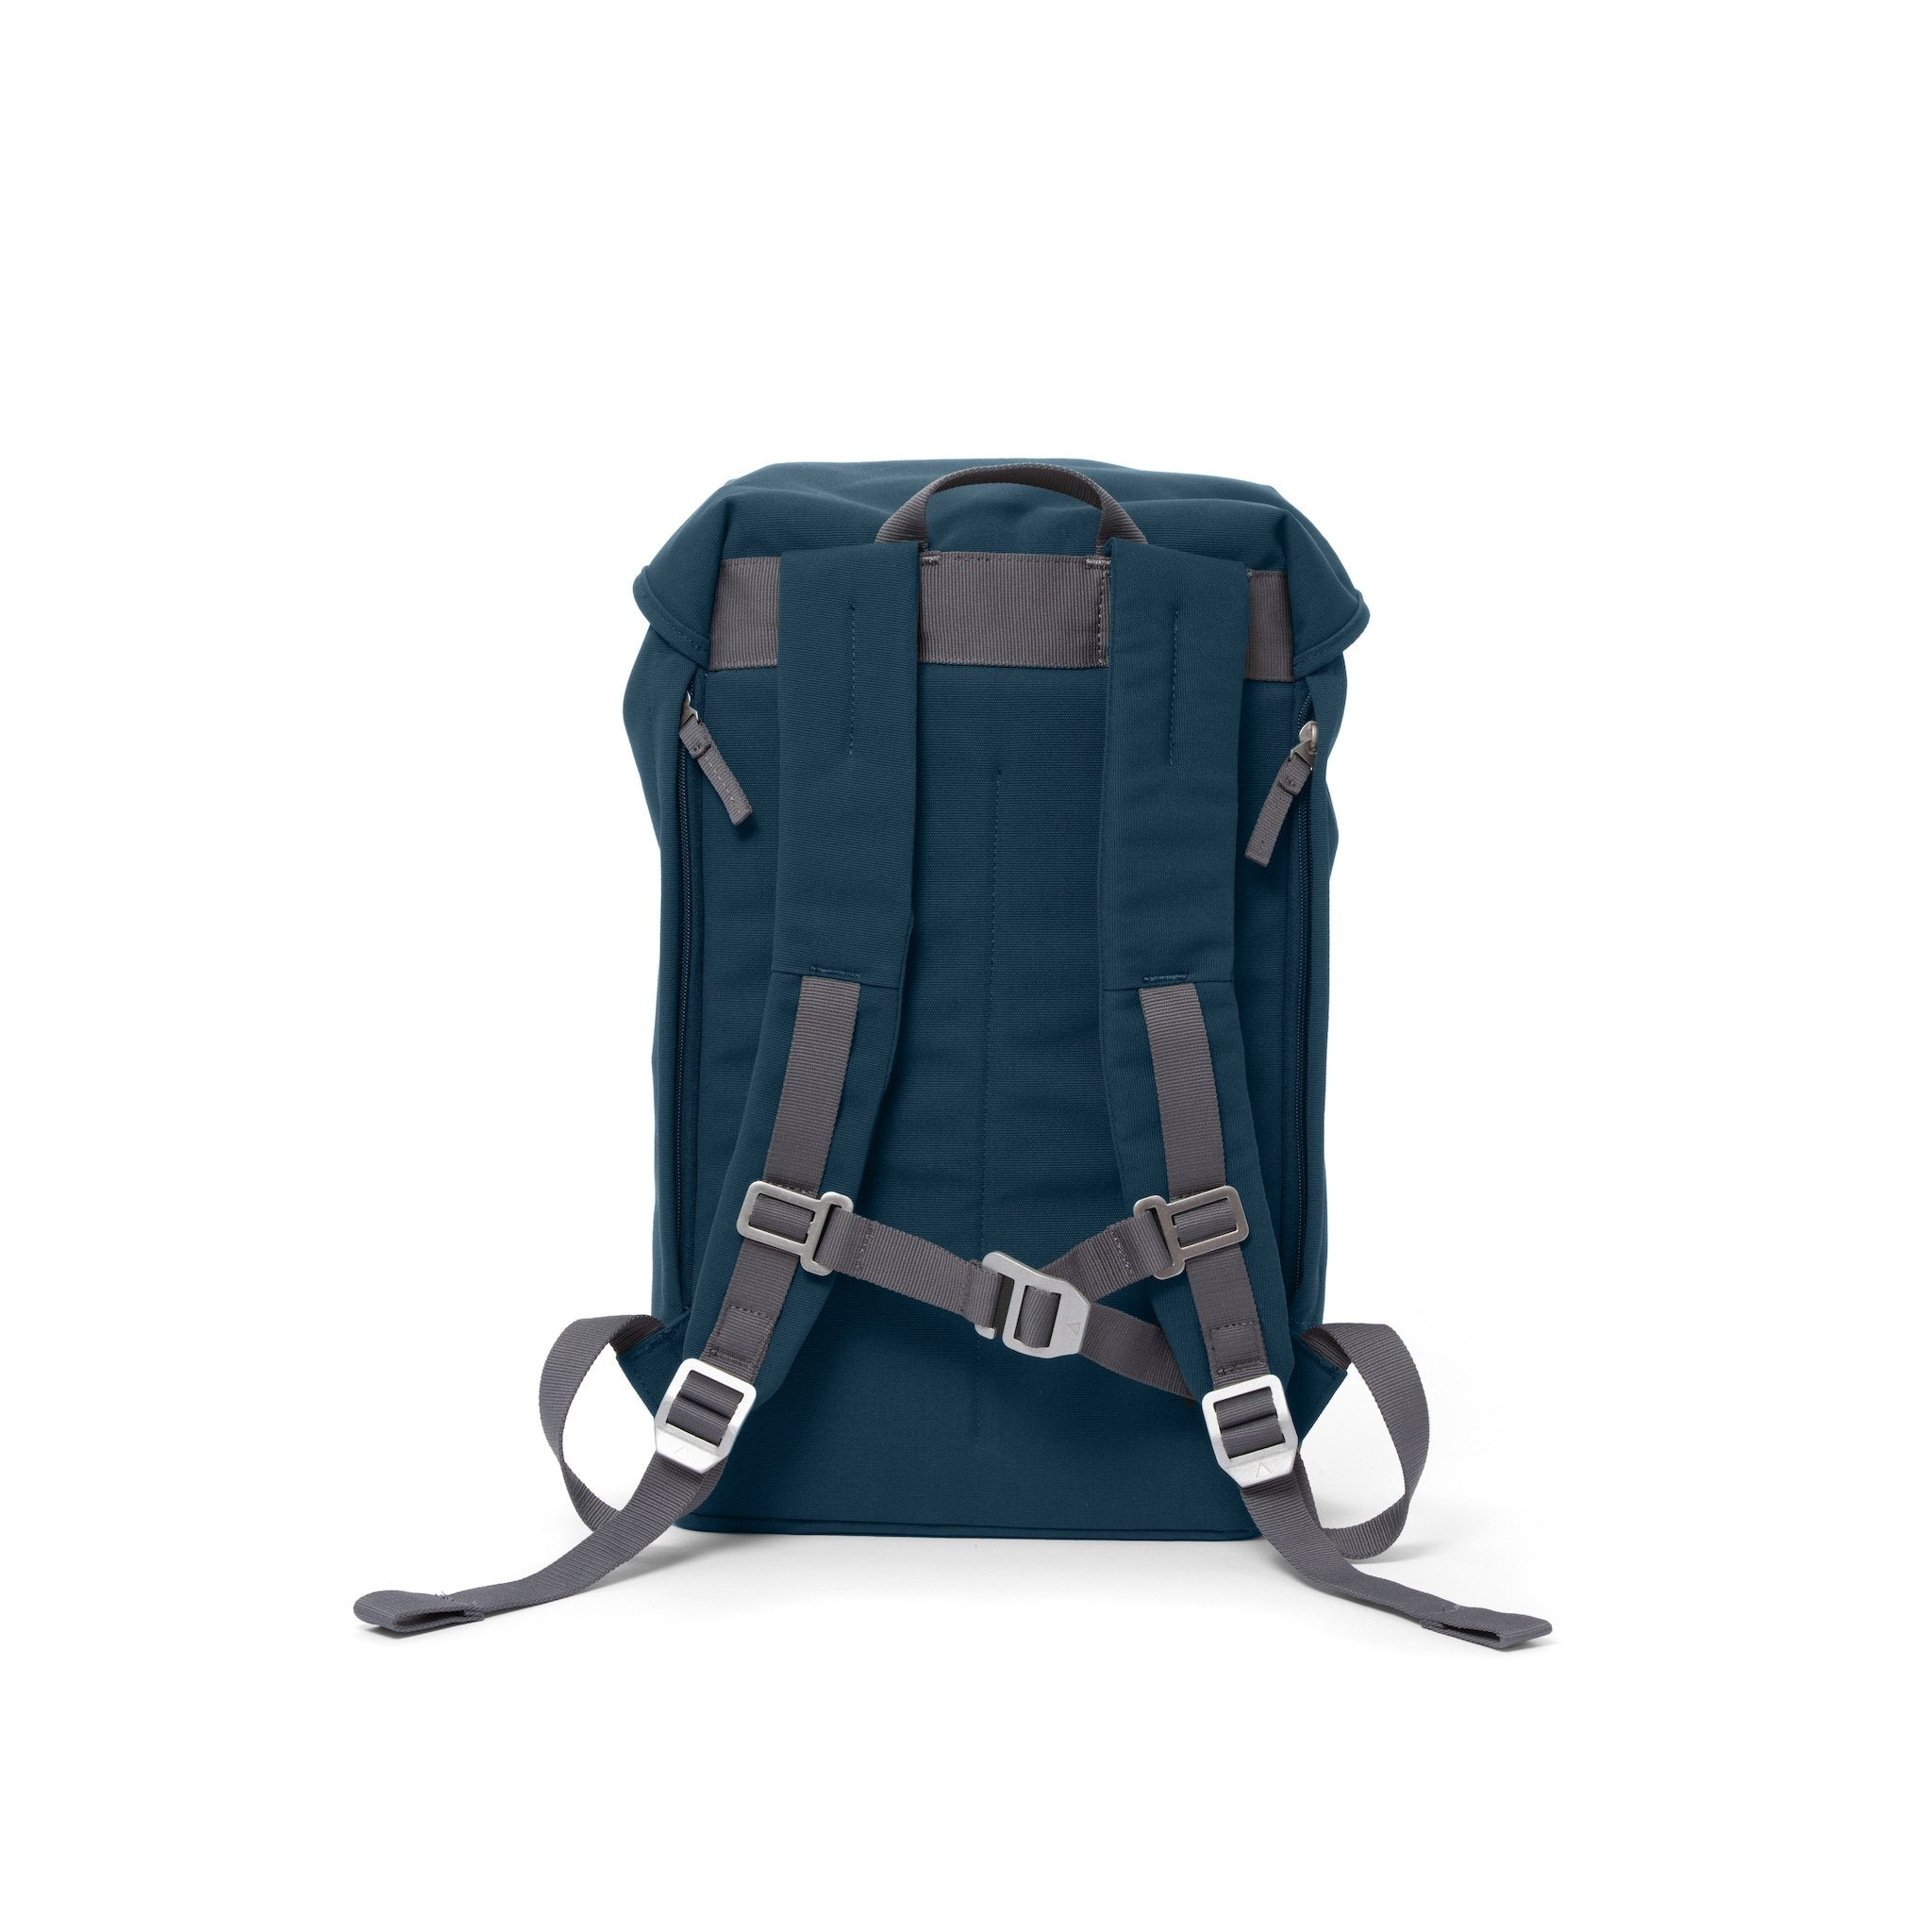 Blue waterproof backpack with padded shoulder straps and chest strap.